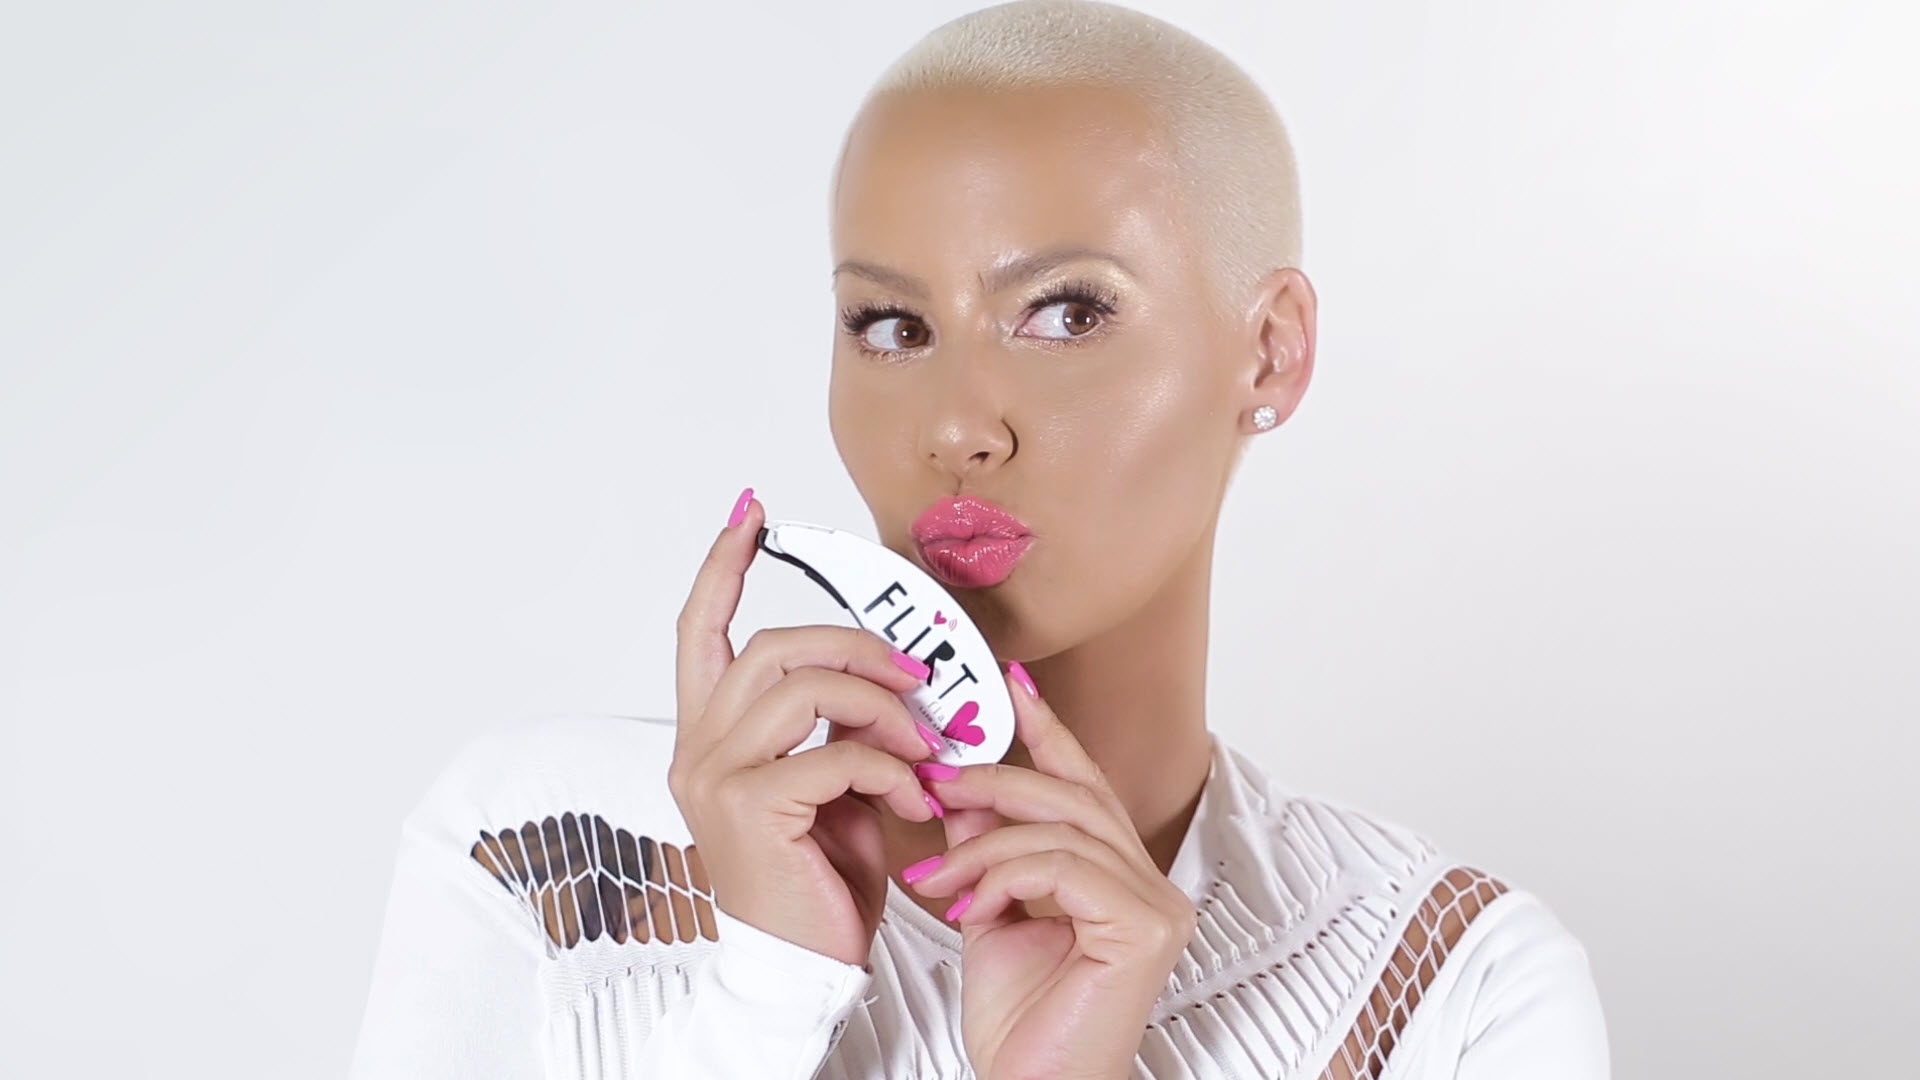 firt-cosmetics-flashes-eyelash-gun-amber-rose_2016_09